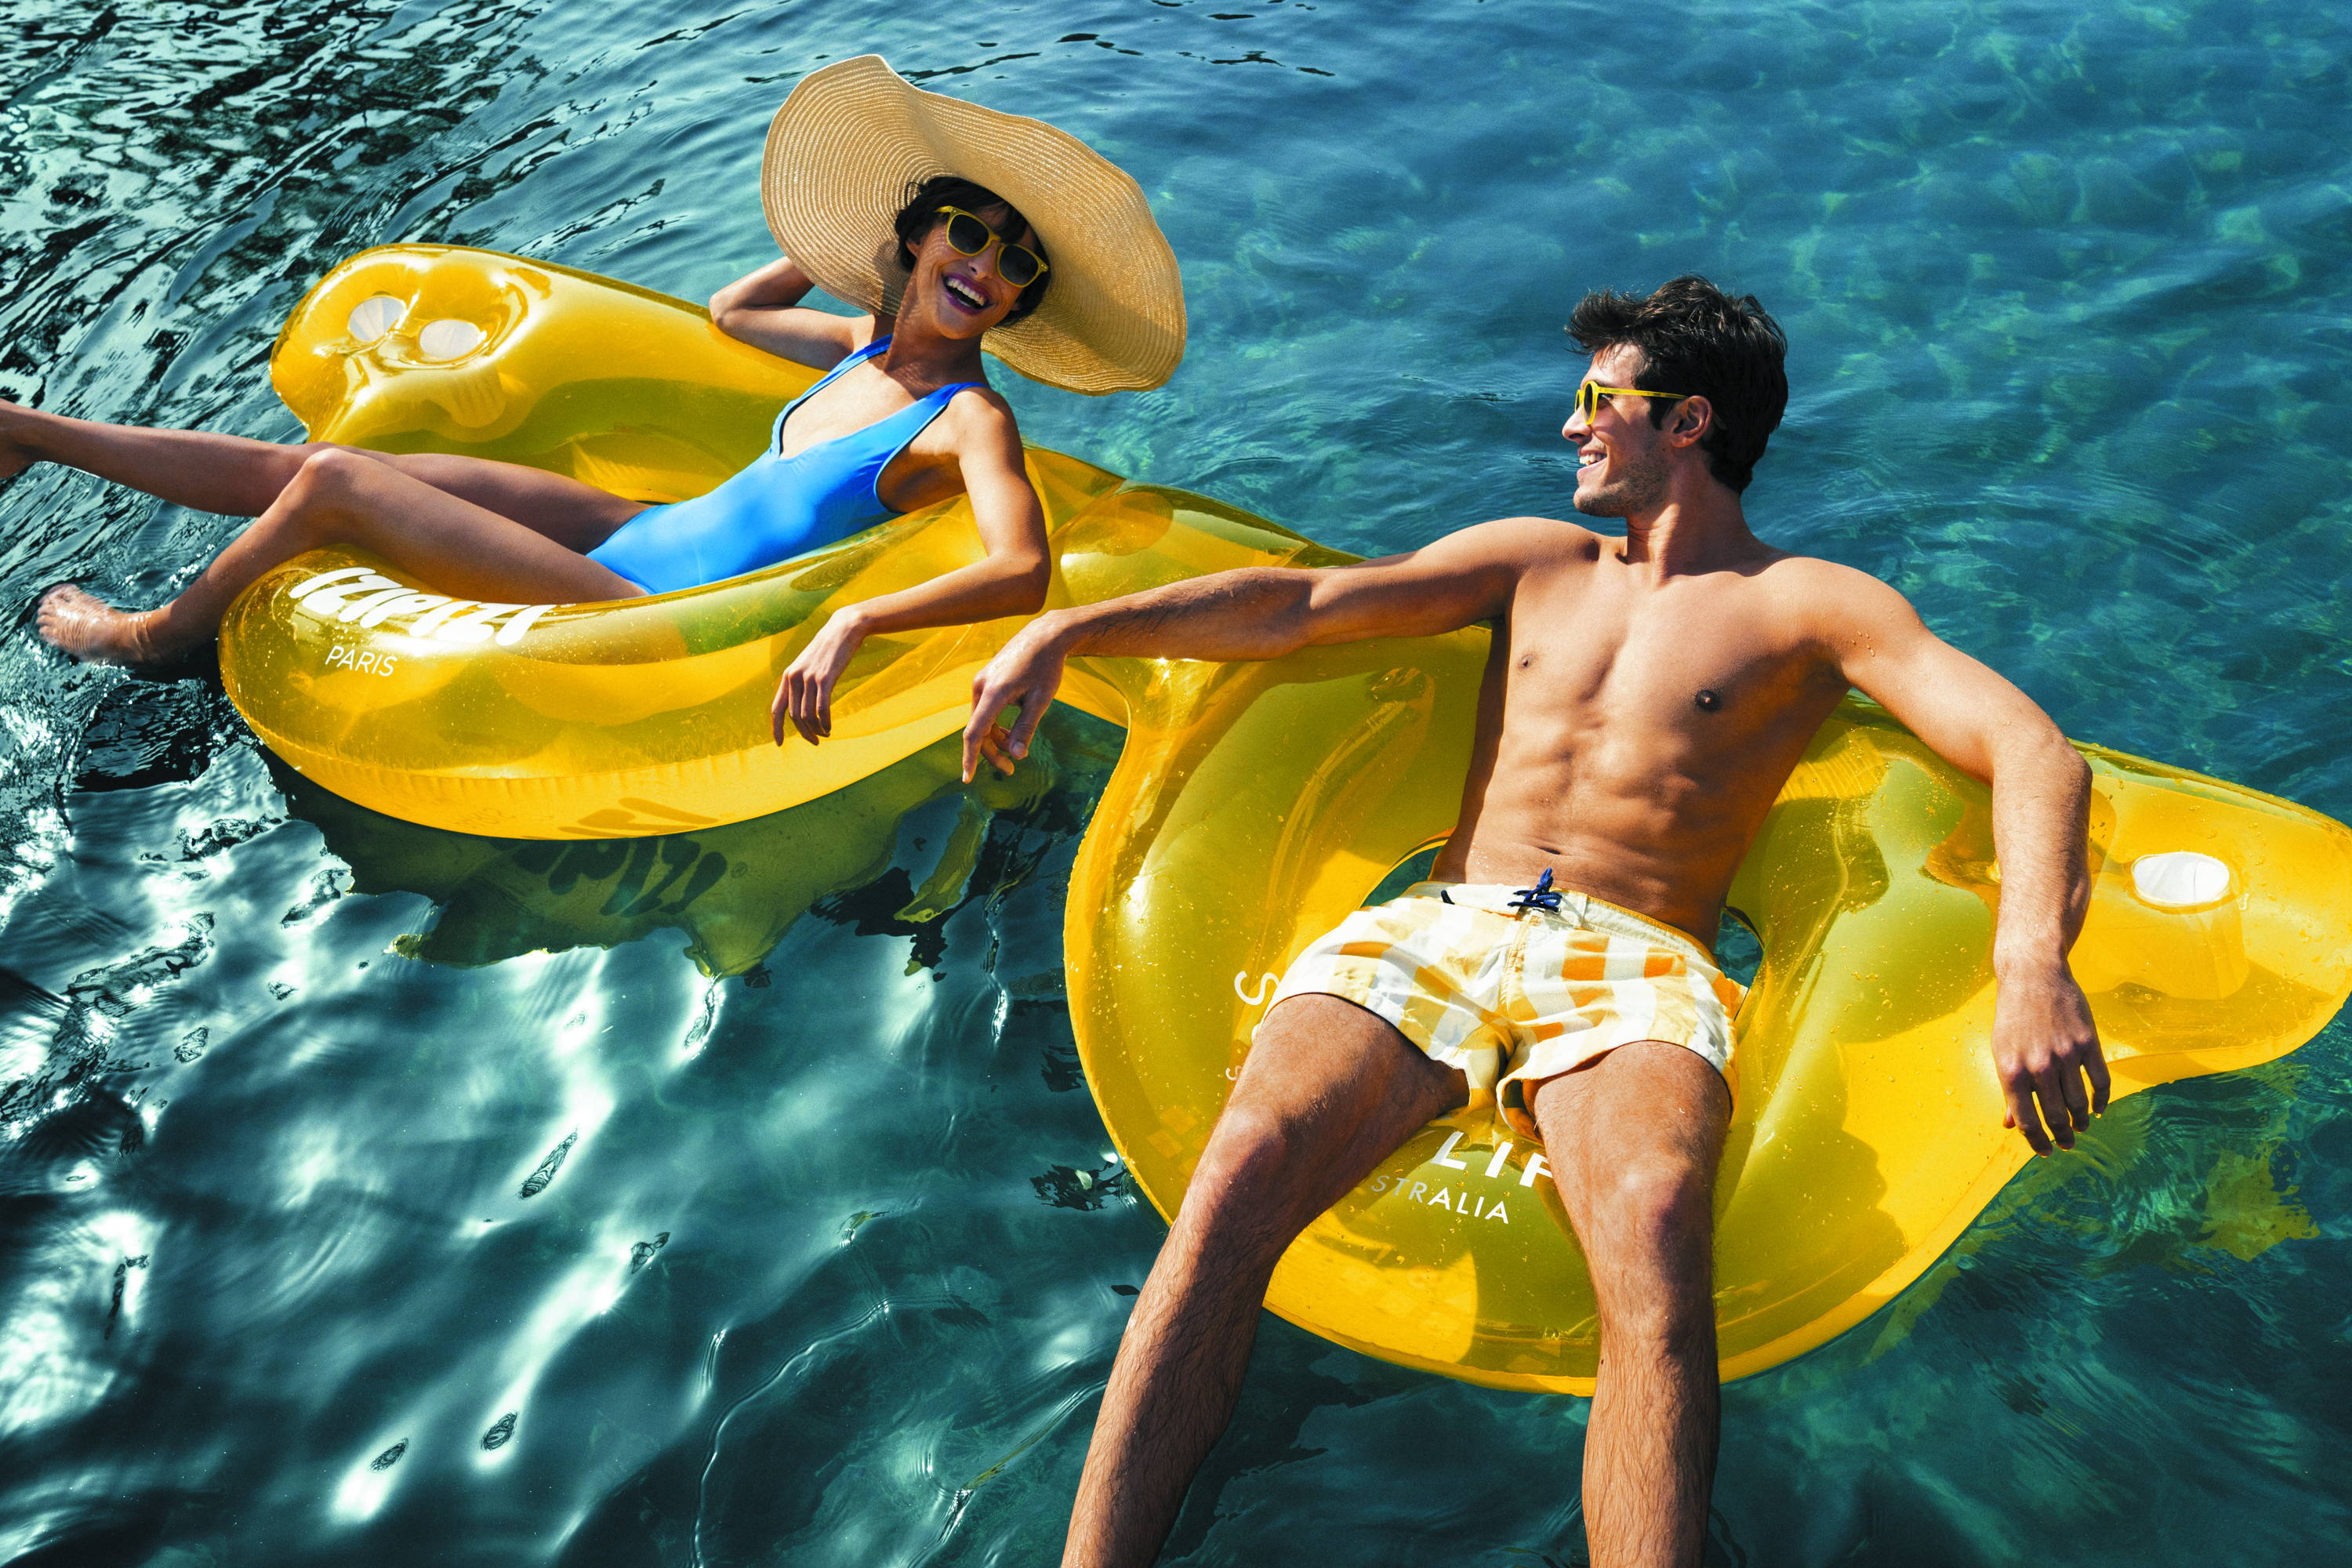 IZIPIZI x Sunnylife Collaboration Sunglasses Pool Floats